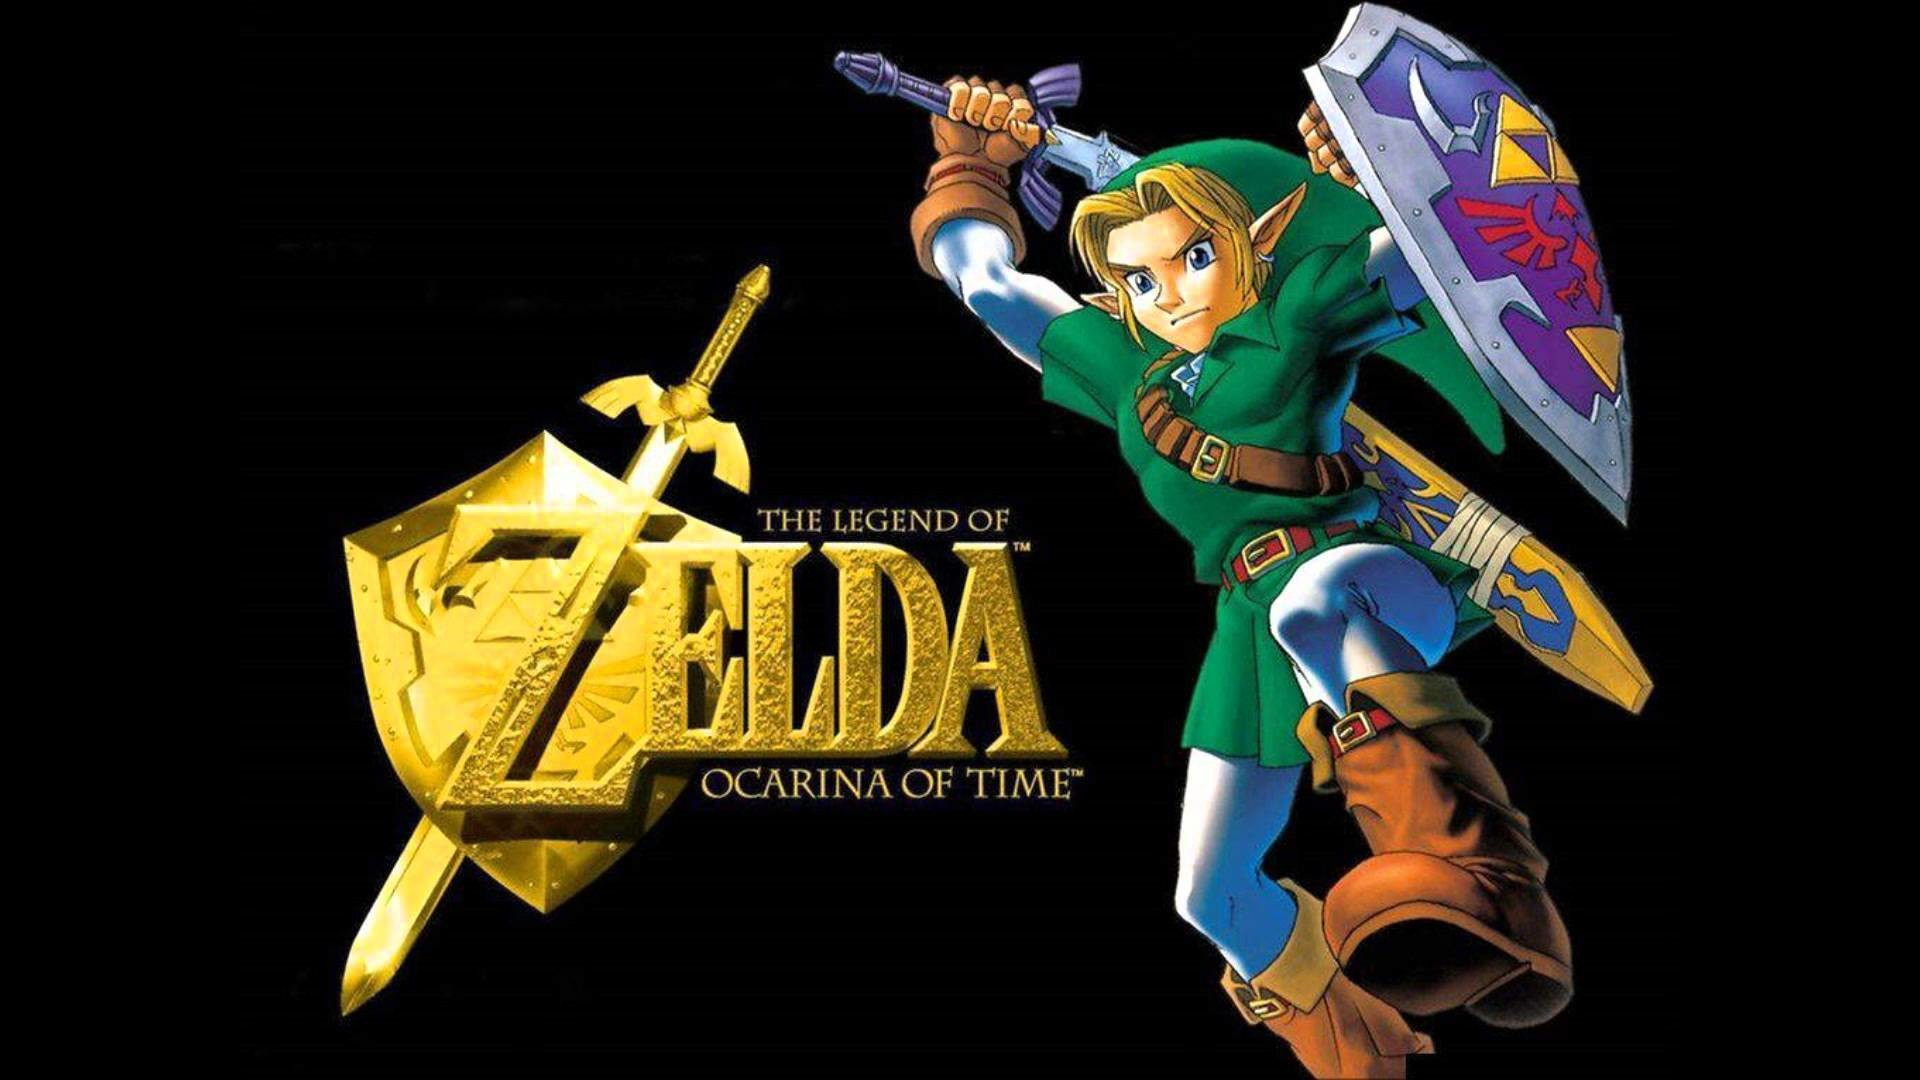 Ocarina of Time is 17 years old this year and until last month I had never  played a Zelda game of any kind, so I hold no nostalgic bias in this review  …